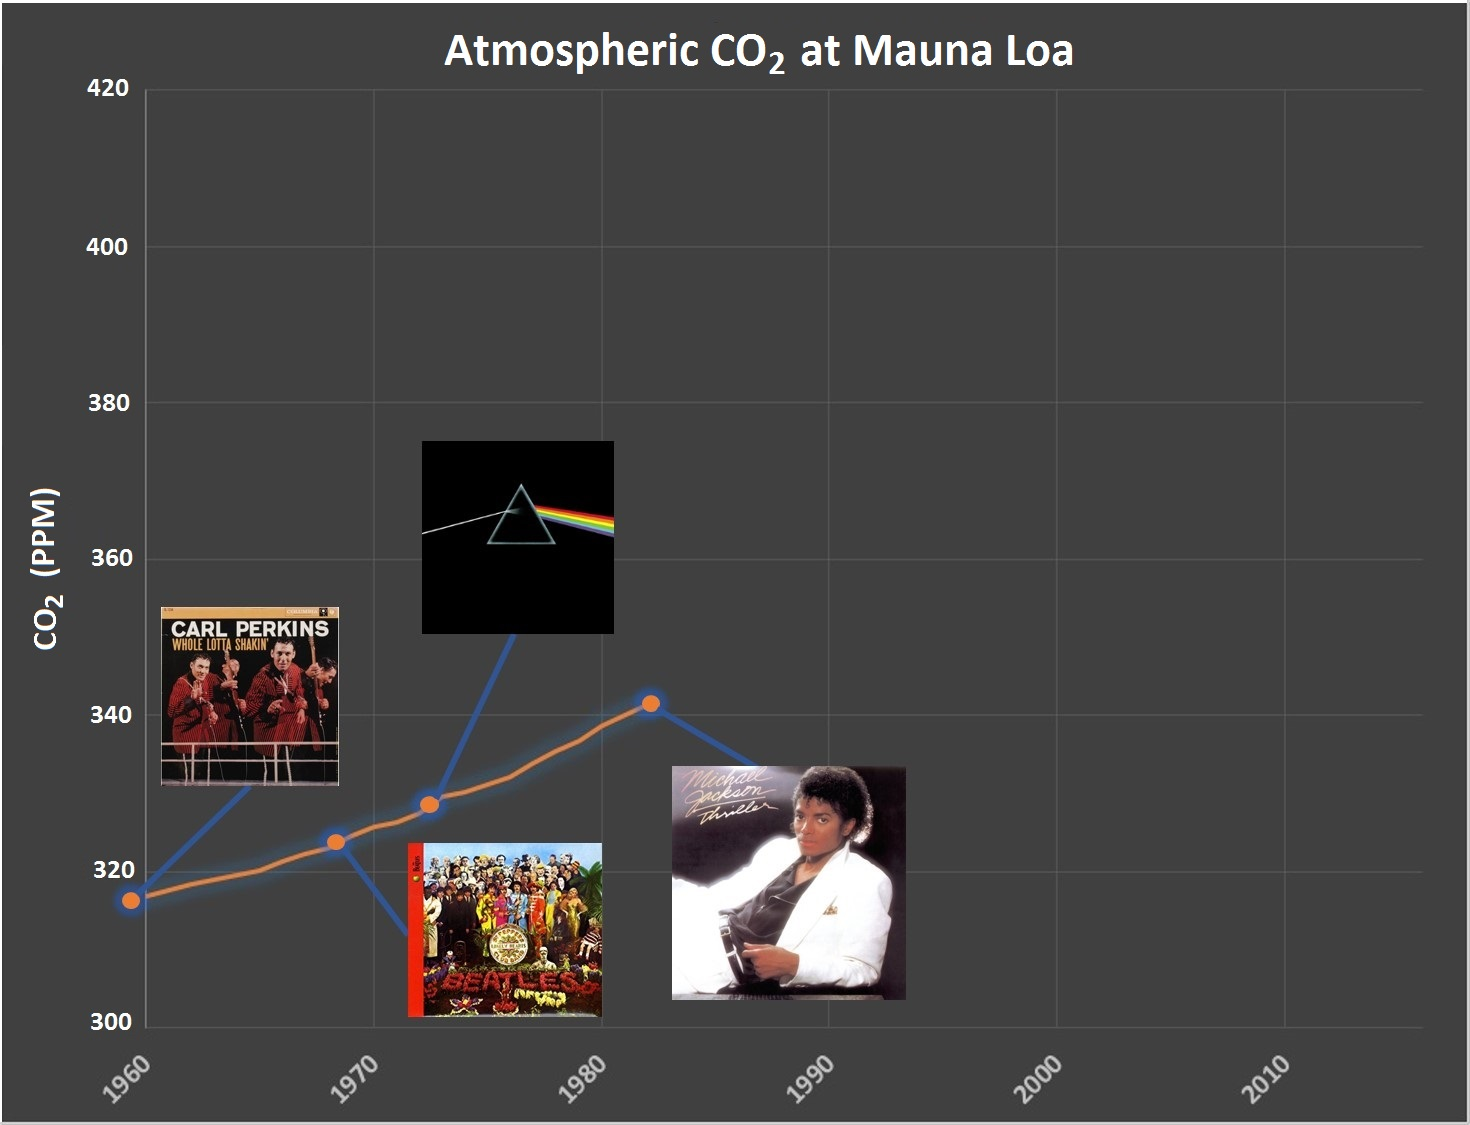 Year: 1982 CO2: 341 ppm (+11 ppm over 9 years)